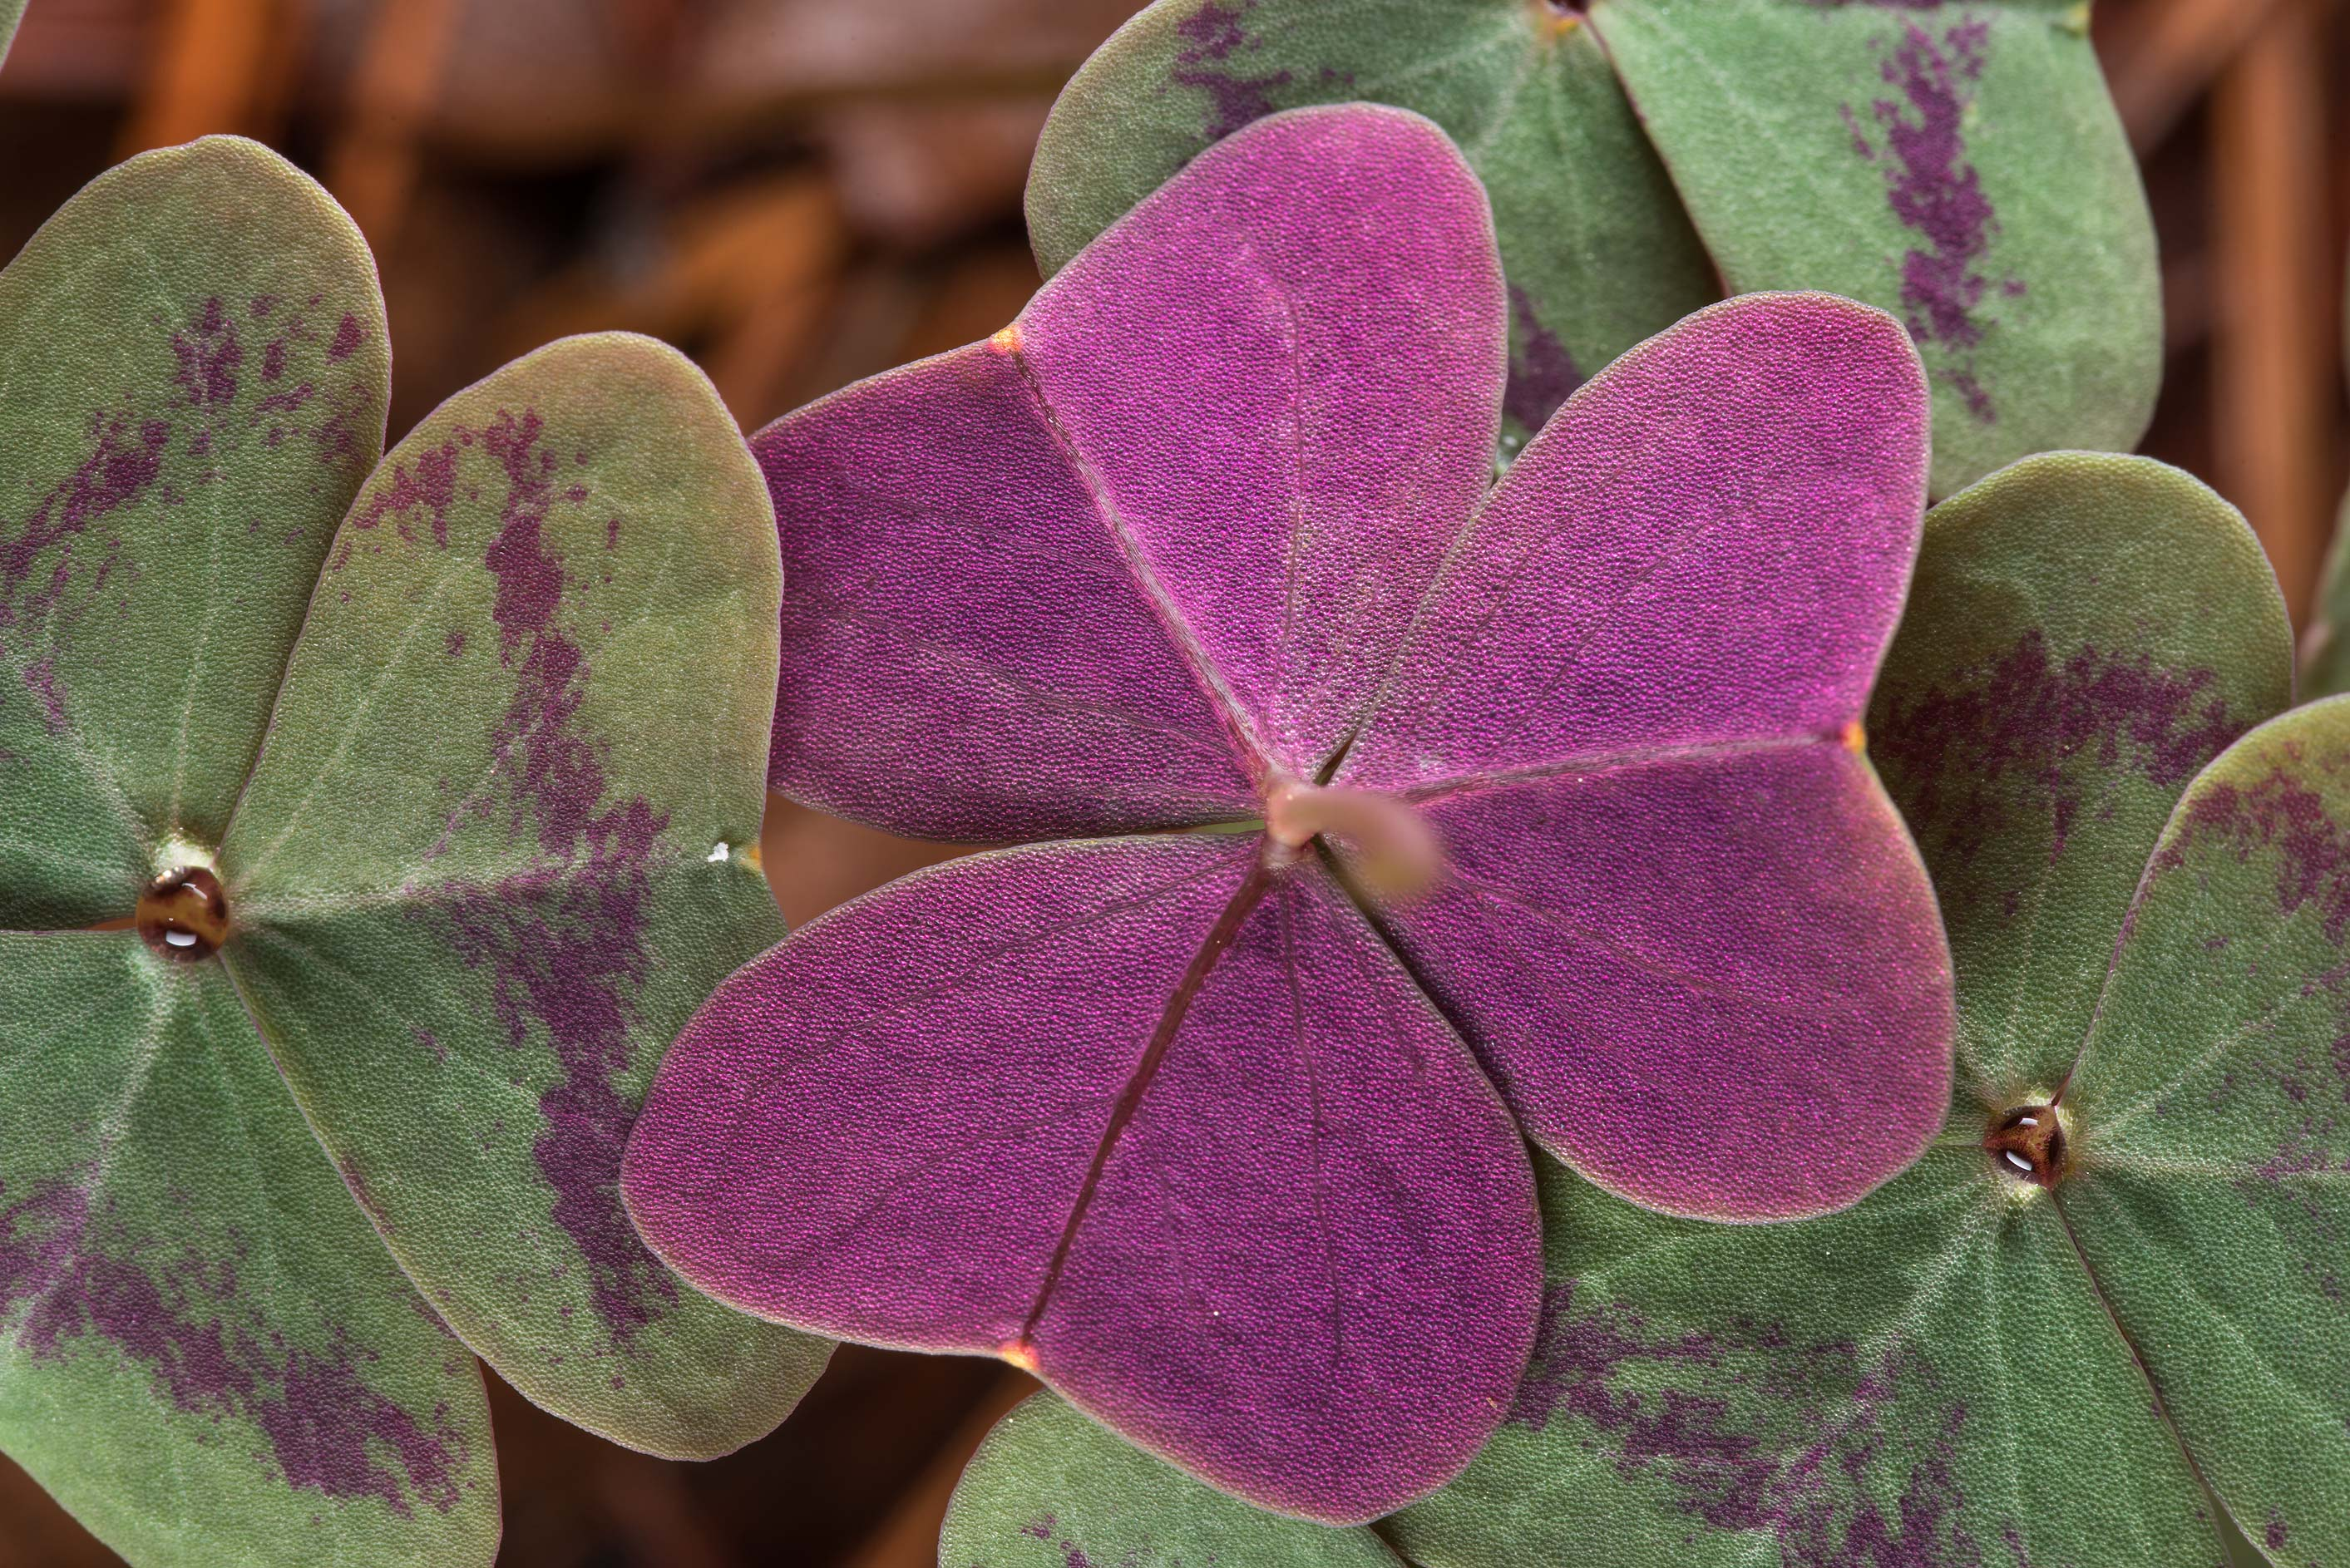 Underside of a leaf of violet woodsorrel (Oxalis...National Forest. Richards, Texas